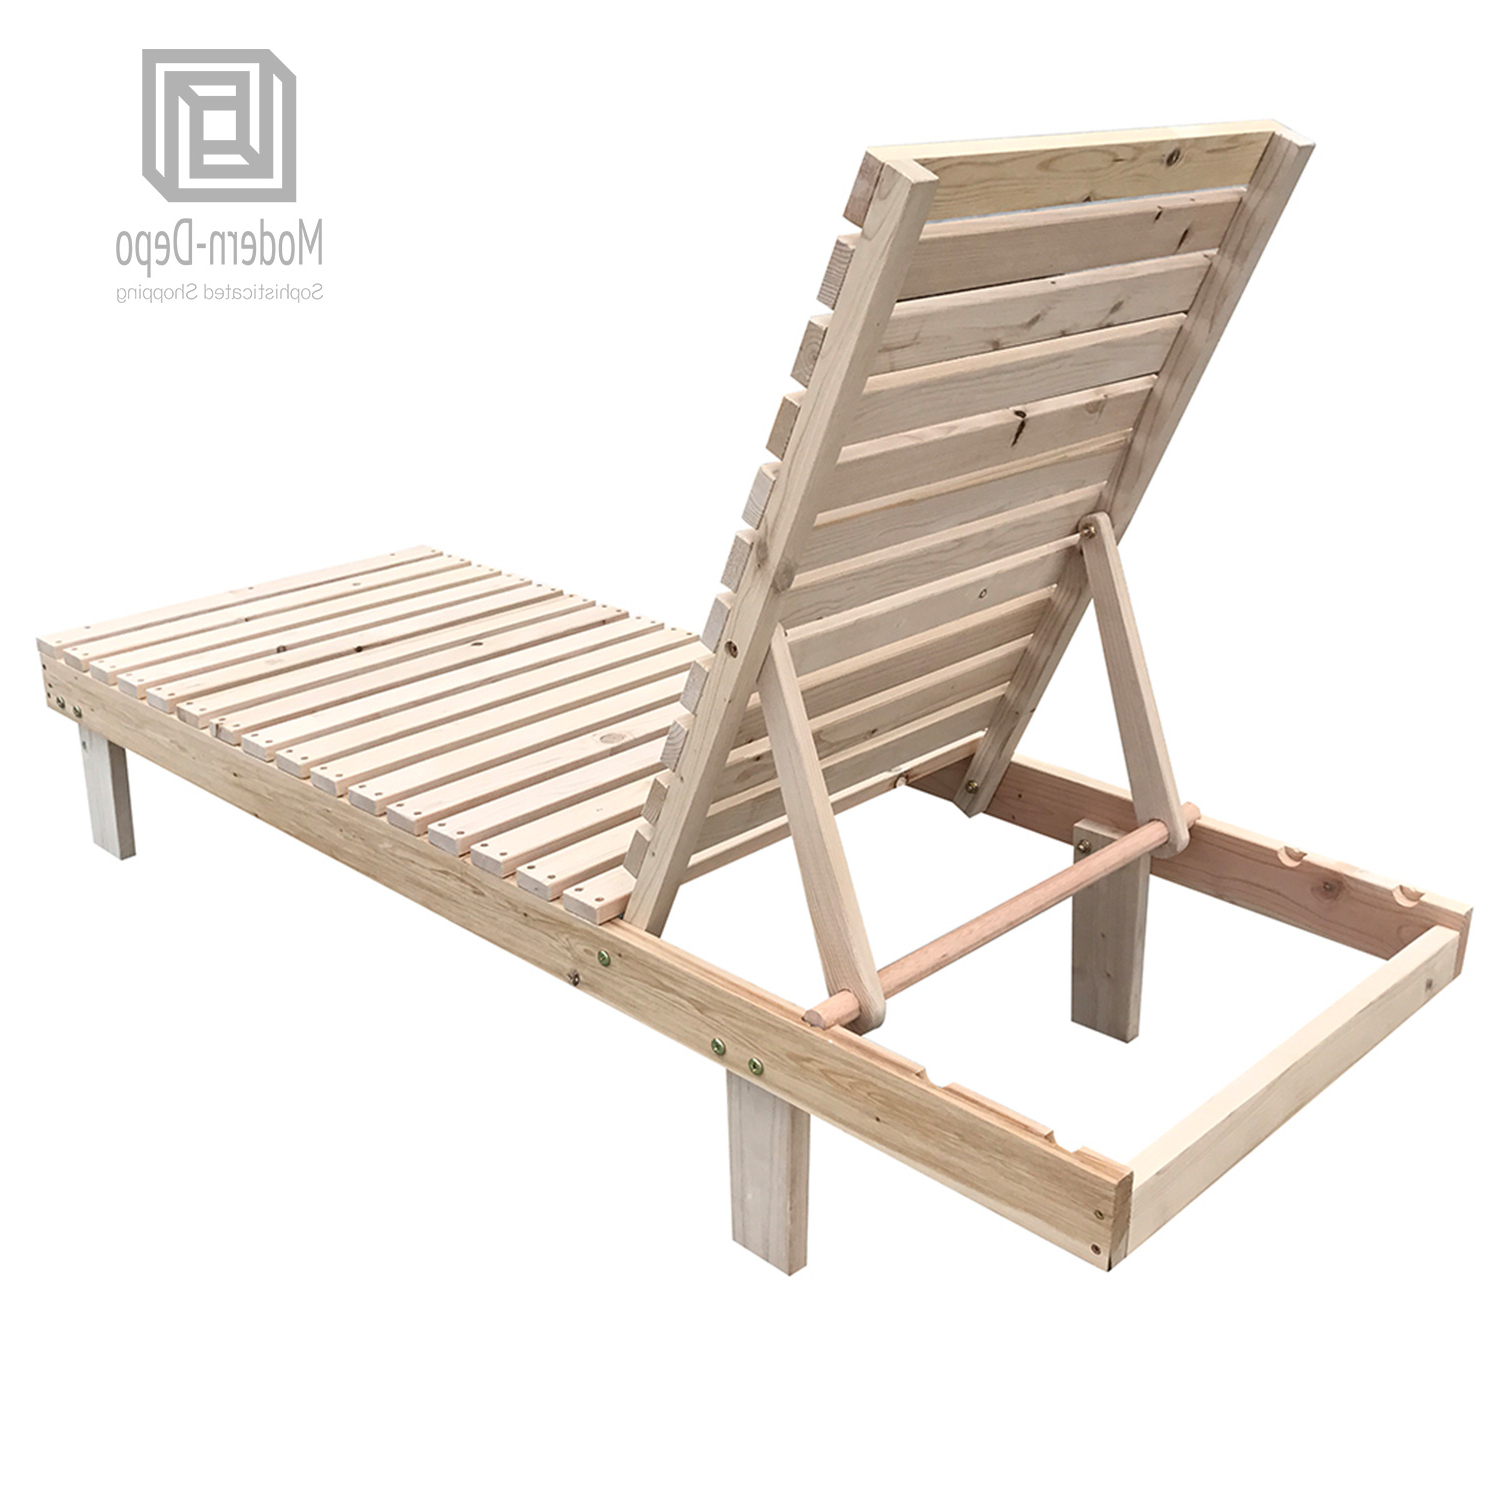 Most Current Details About Patio Spa Pool Wooden Chaise Lounge Adjustable Chair Outdoor Garden Furniture Pertaining To Outdoor Adjustable Wood Chaise Lounges (View 16 of 25)